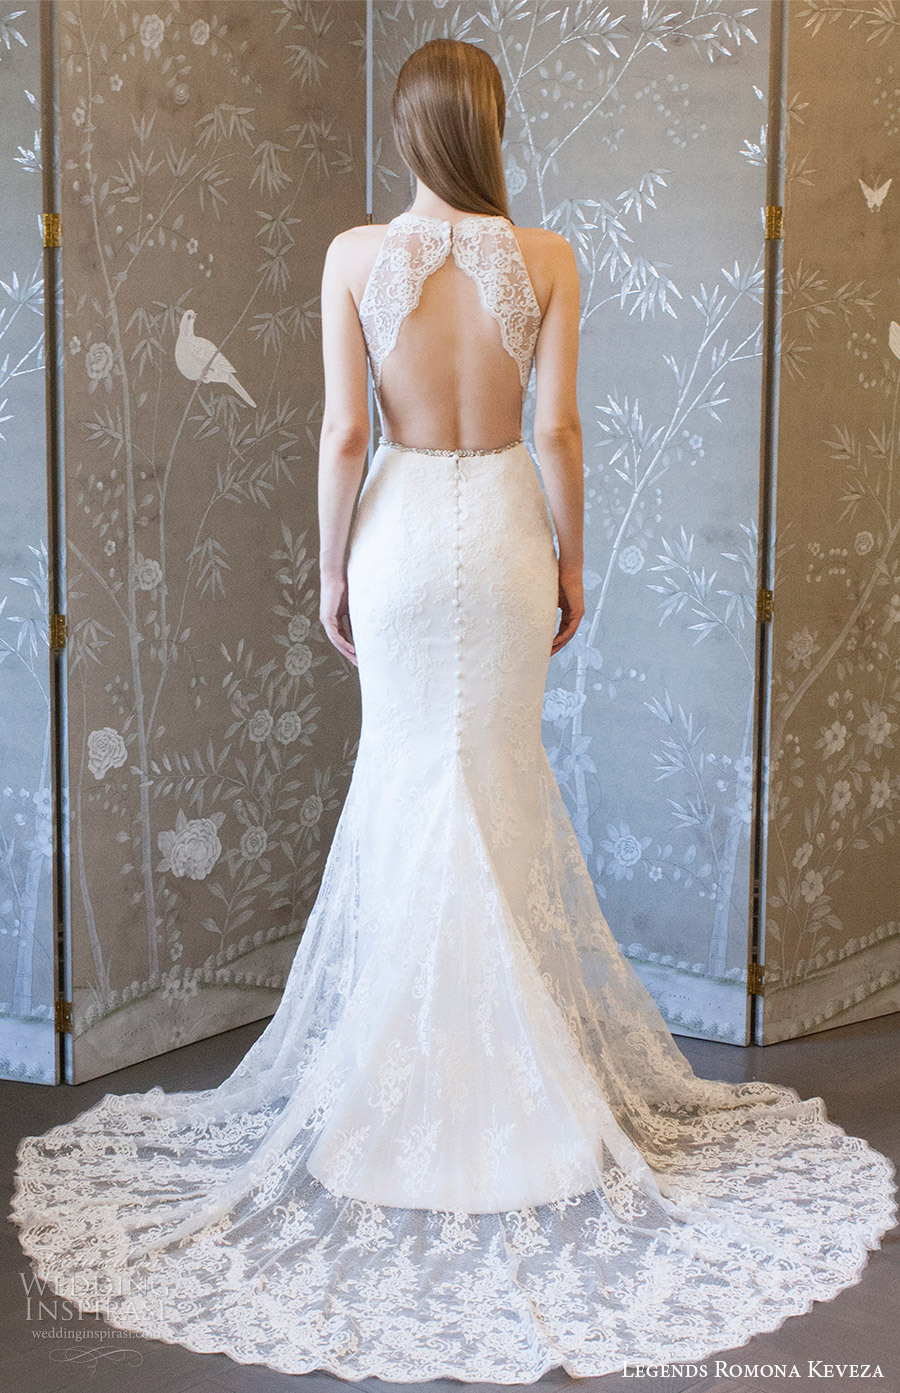 legends romona keveza spring 2018 bridal sleeveless deep v neck lace sheath wedding dress (l8127) mv keyhole back elegant romantic long train